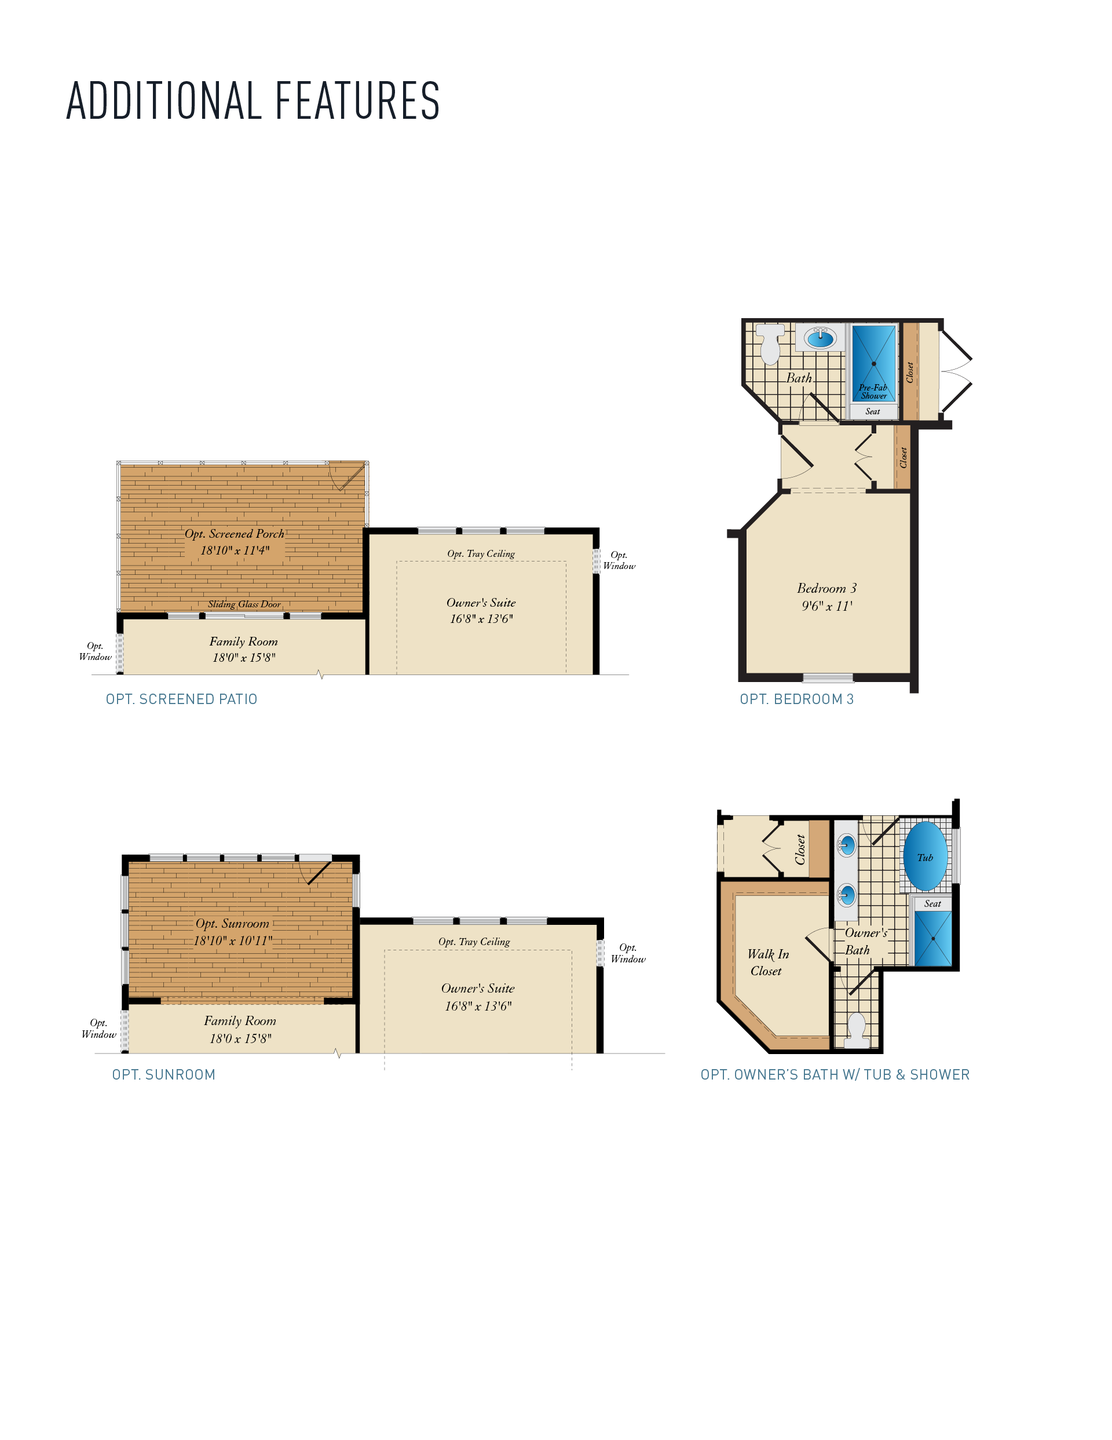 Additional Features. Hayes New Home Floor Plan